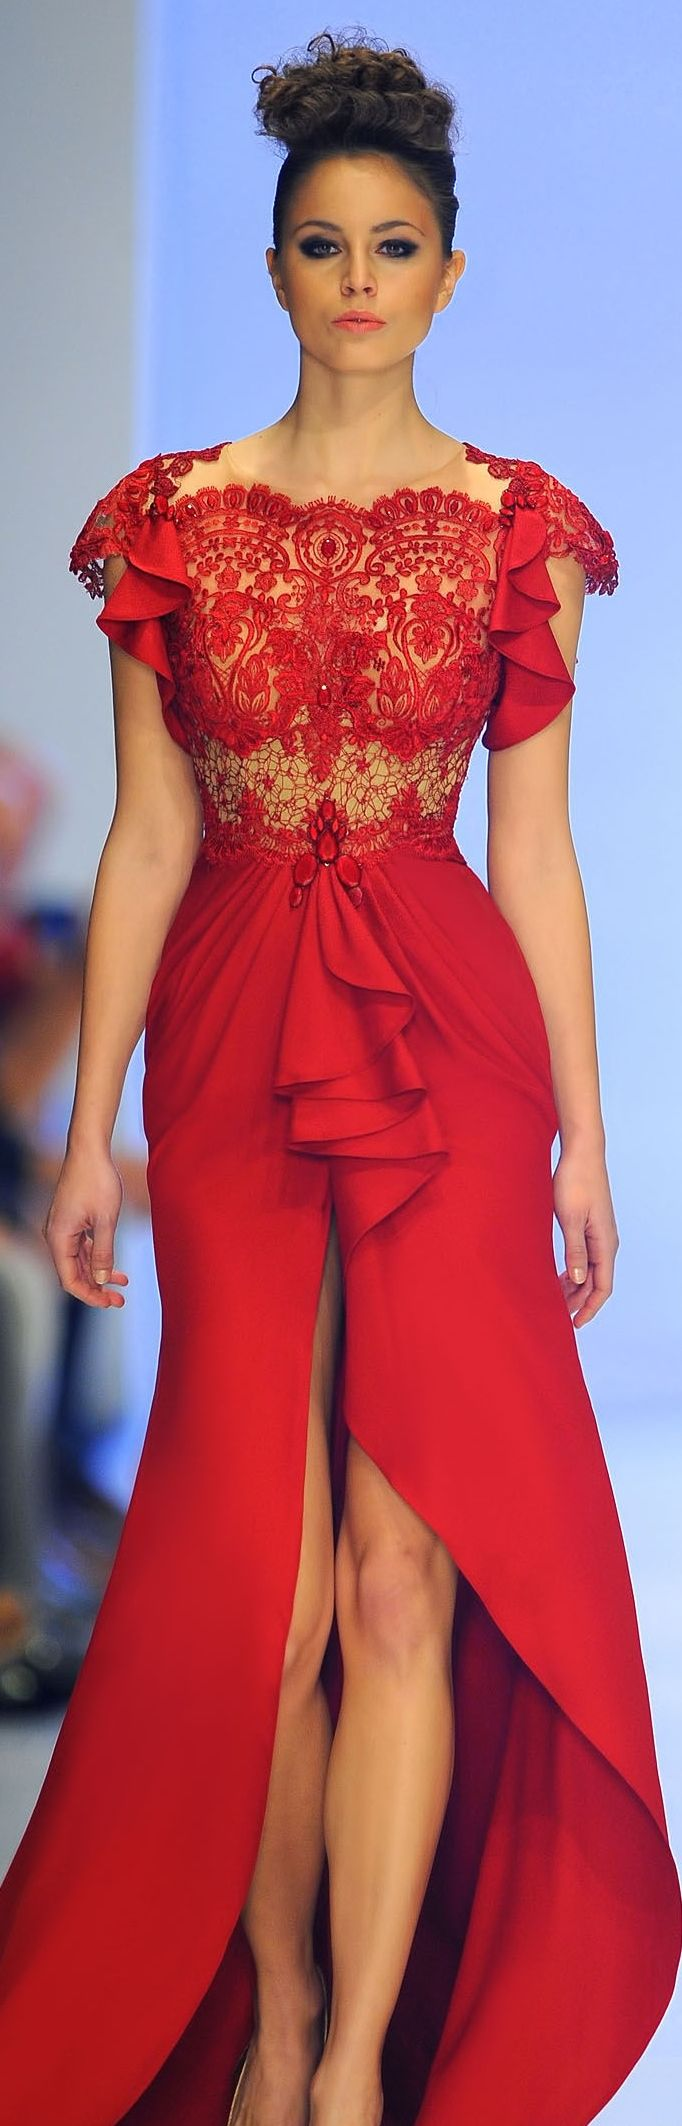 Fouad Sarkis - Red Haute Couture - 2014